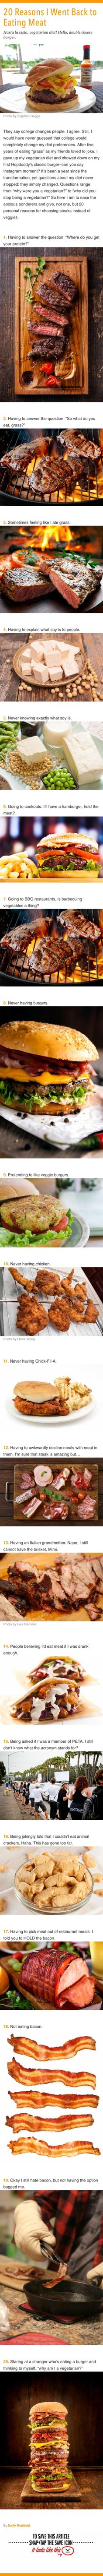 Pin by Olivia Lyne on Cooking Pinterest Food